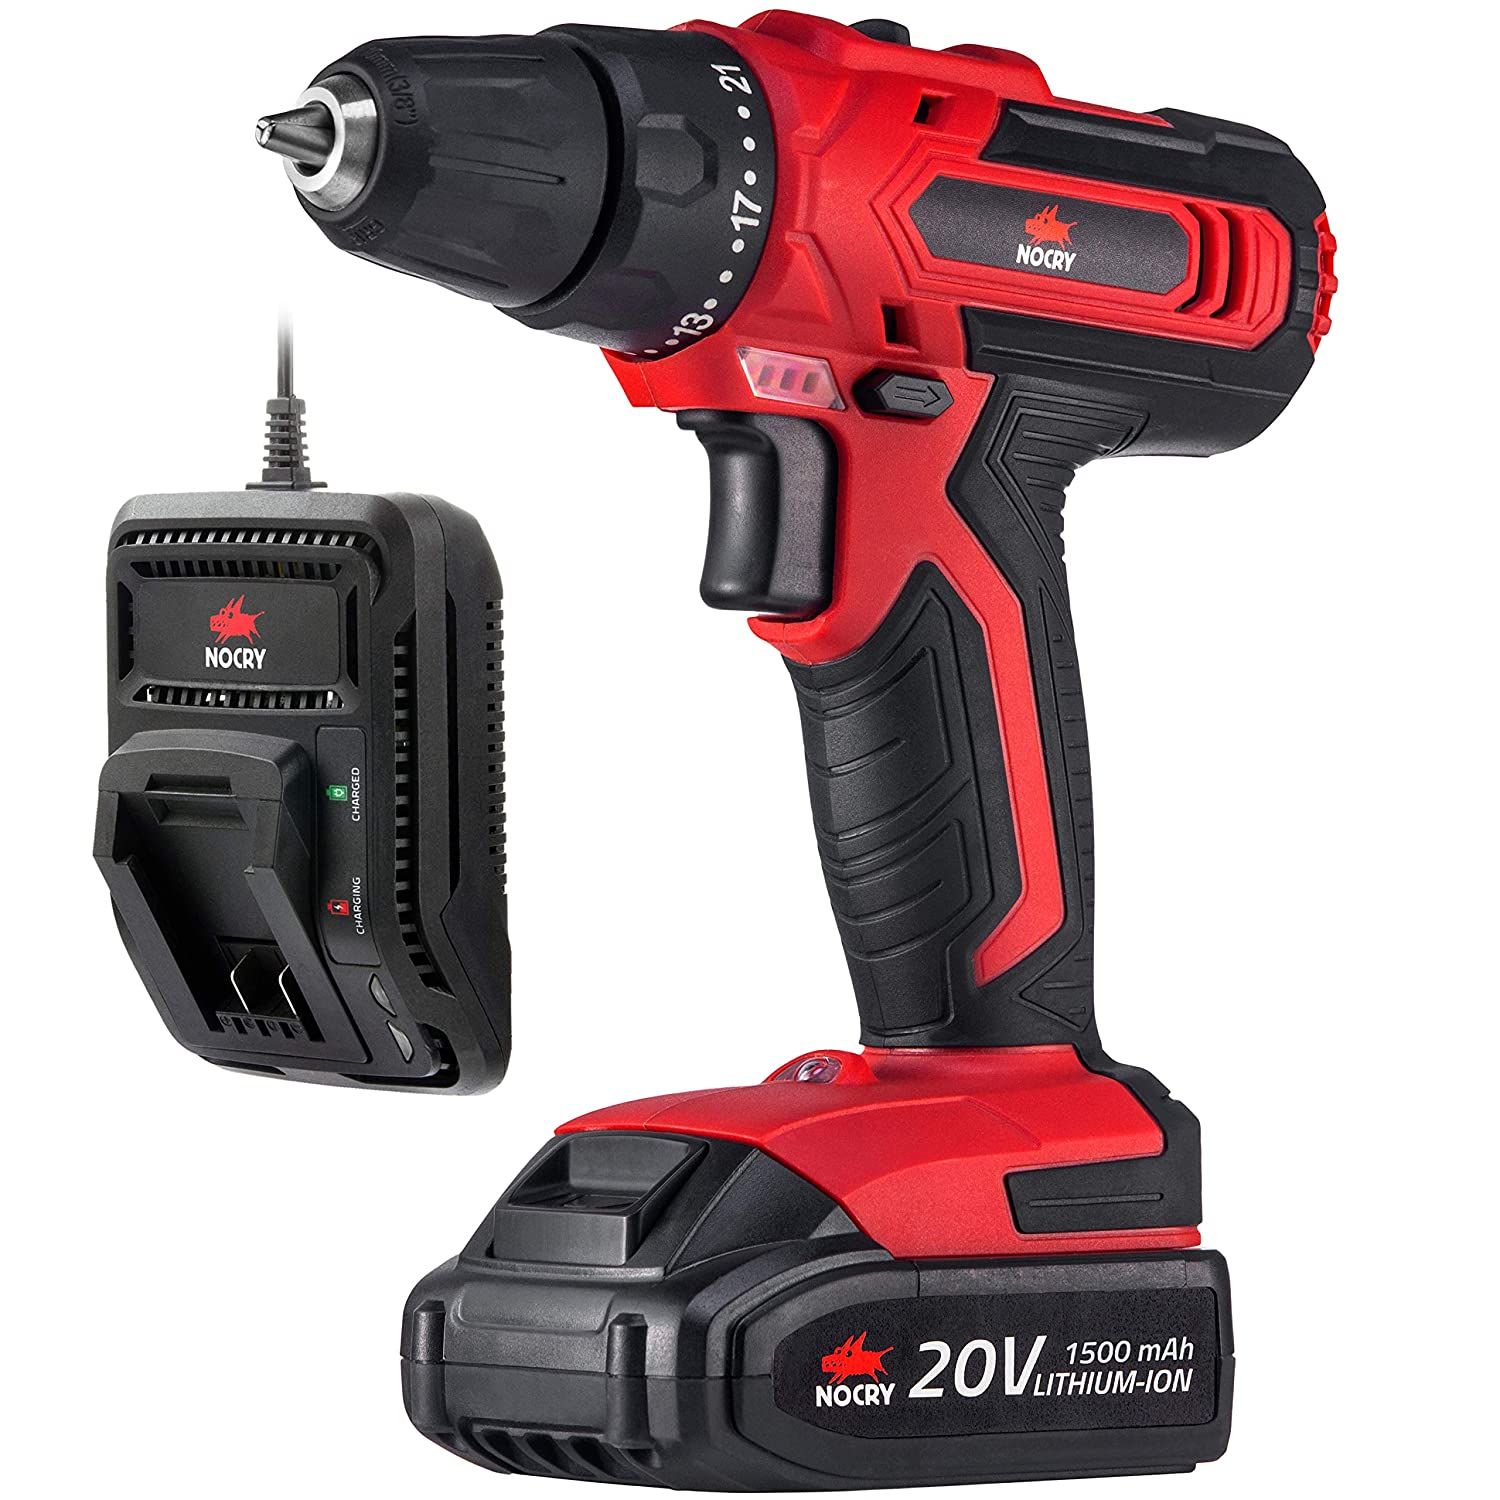 NoCry Cordless Drill Driver Kit – 266 in-lb 30 N.m Max Torque, 2 Gear Speeds Max 1400 RPM , 3 8 inch Chuck, 21 1 Clutch Positions, LED work light 20V 1.5 Ah Battery Fast Charger Included